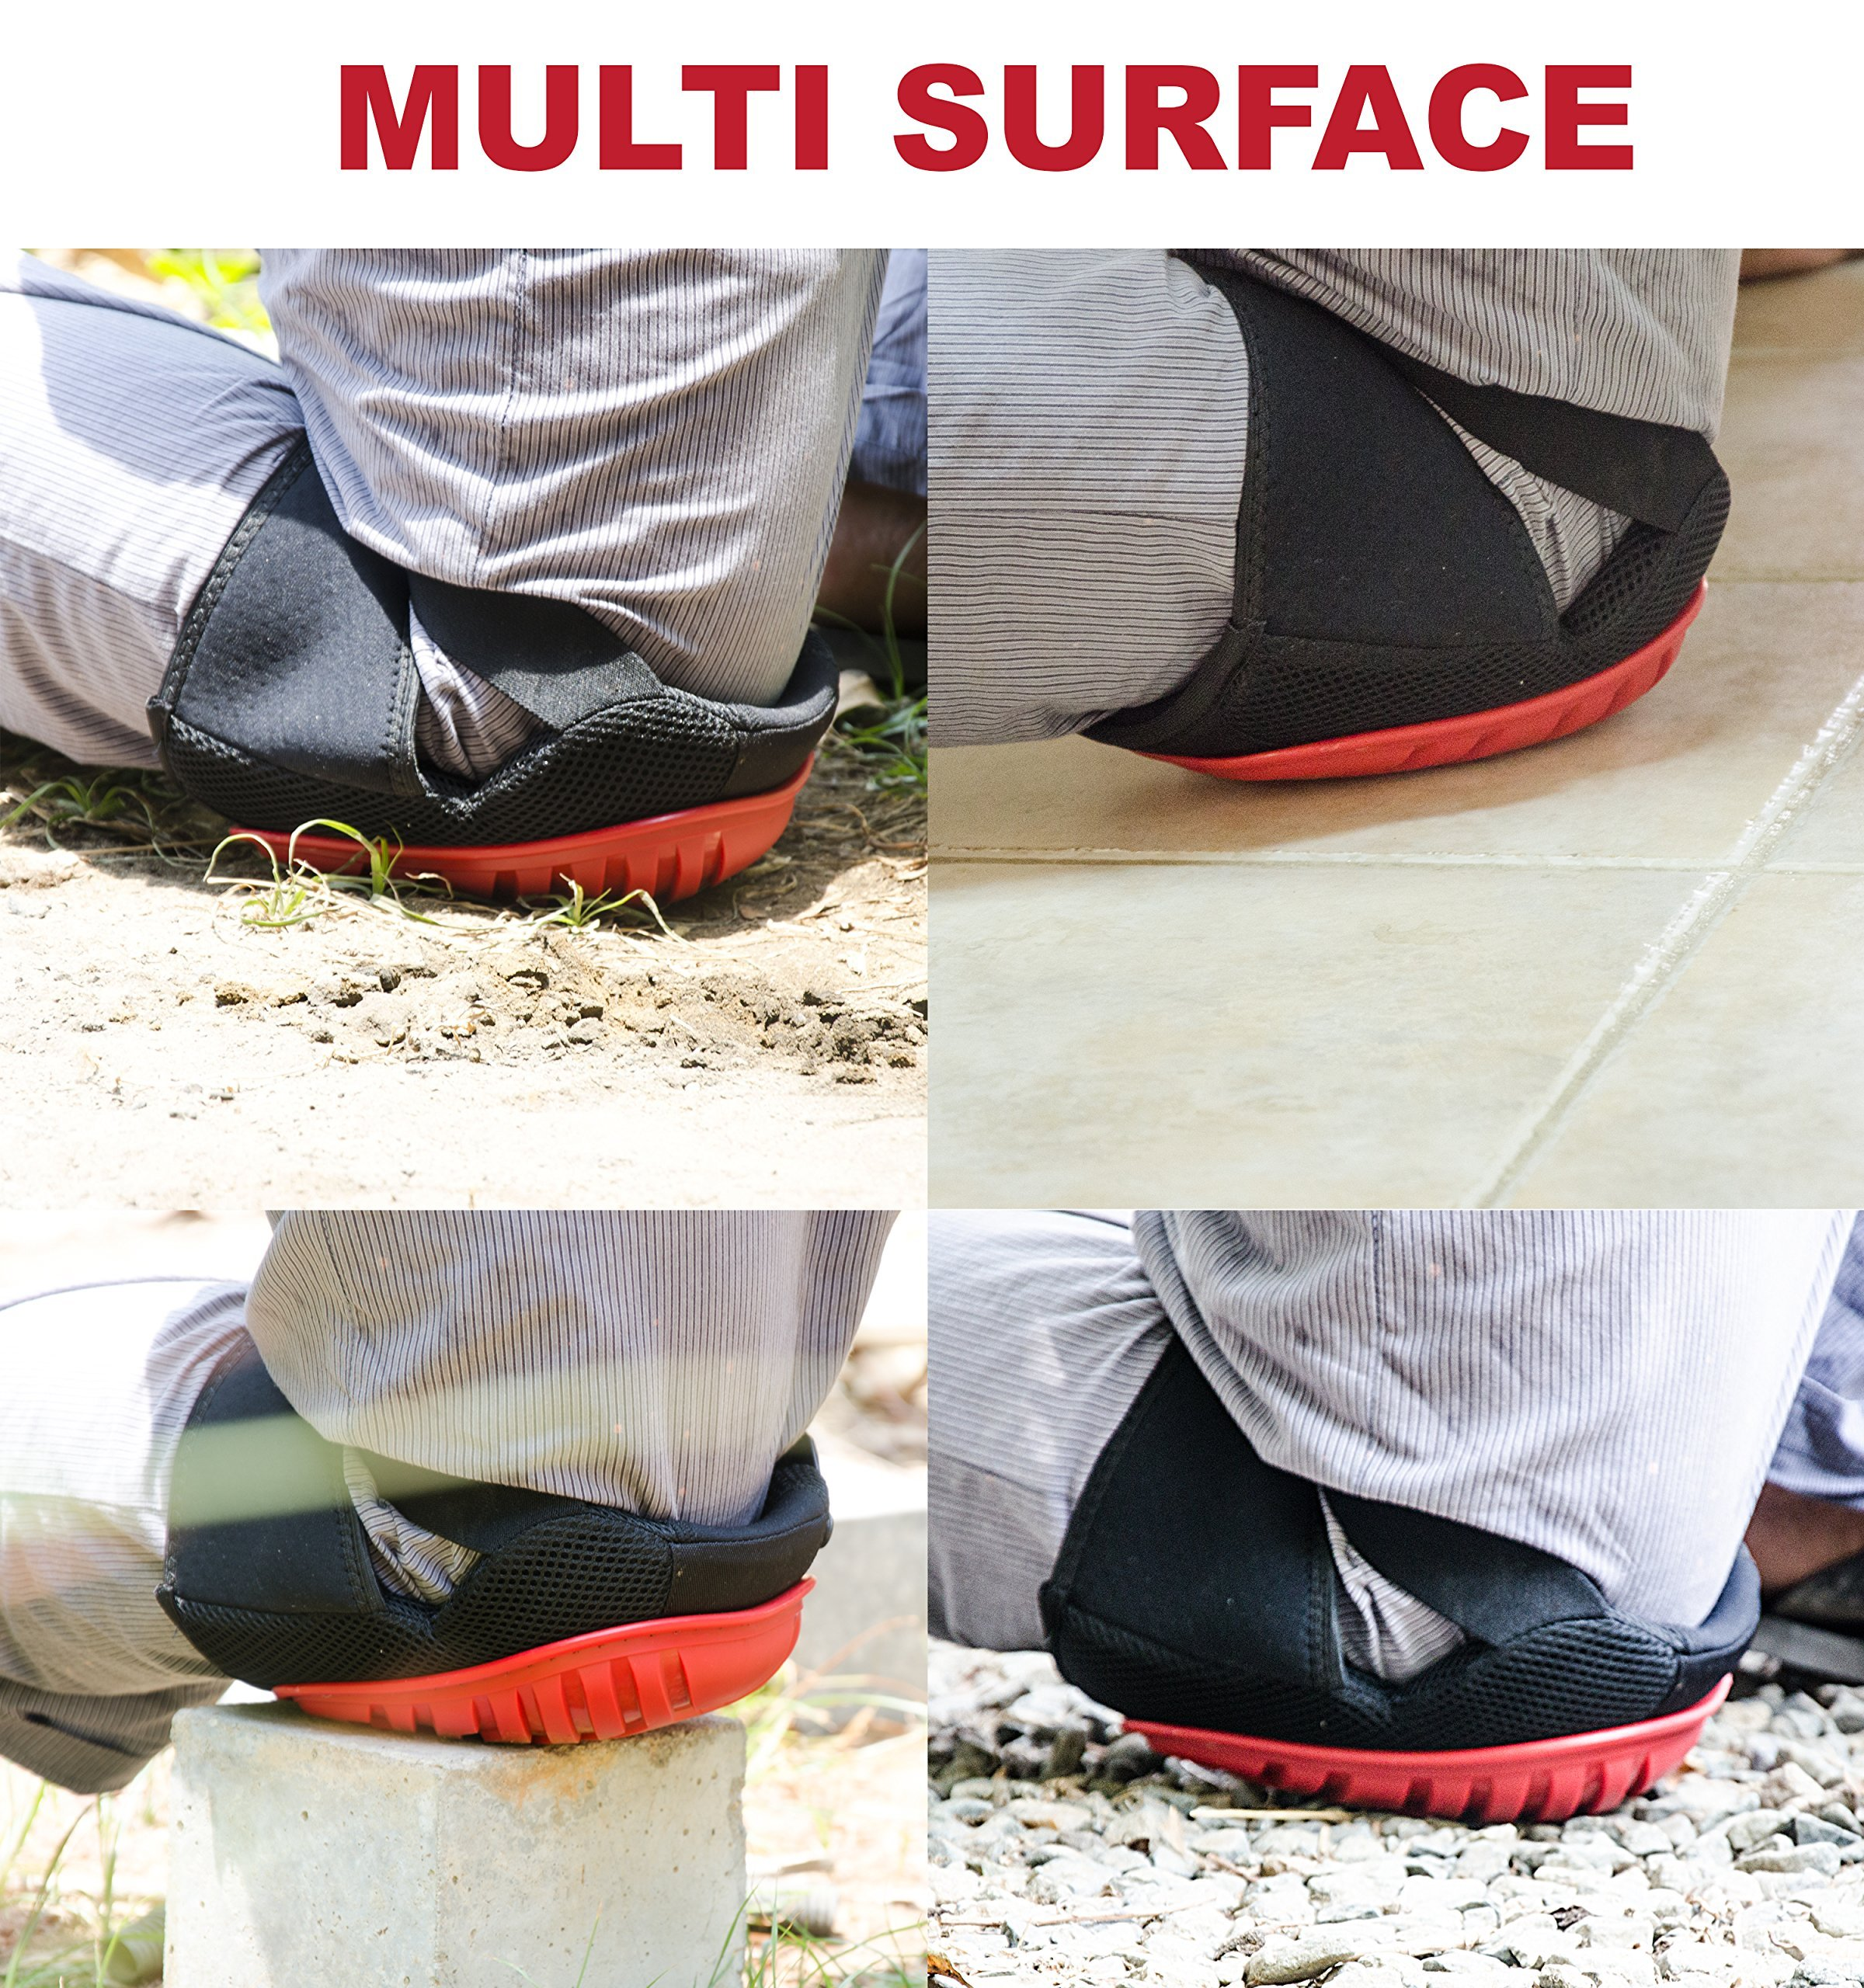 Professional Knee Pads - Easy to WEAR Heavy Duty Memory Foam Padding, Comfortable Gel Cushion, Strong Straps FITS All, Adjustable Easy-Fix Clips - Best for Gardening, Construction, Flooring by Kutir (Image #2)